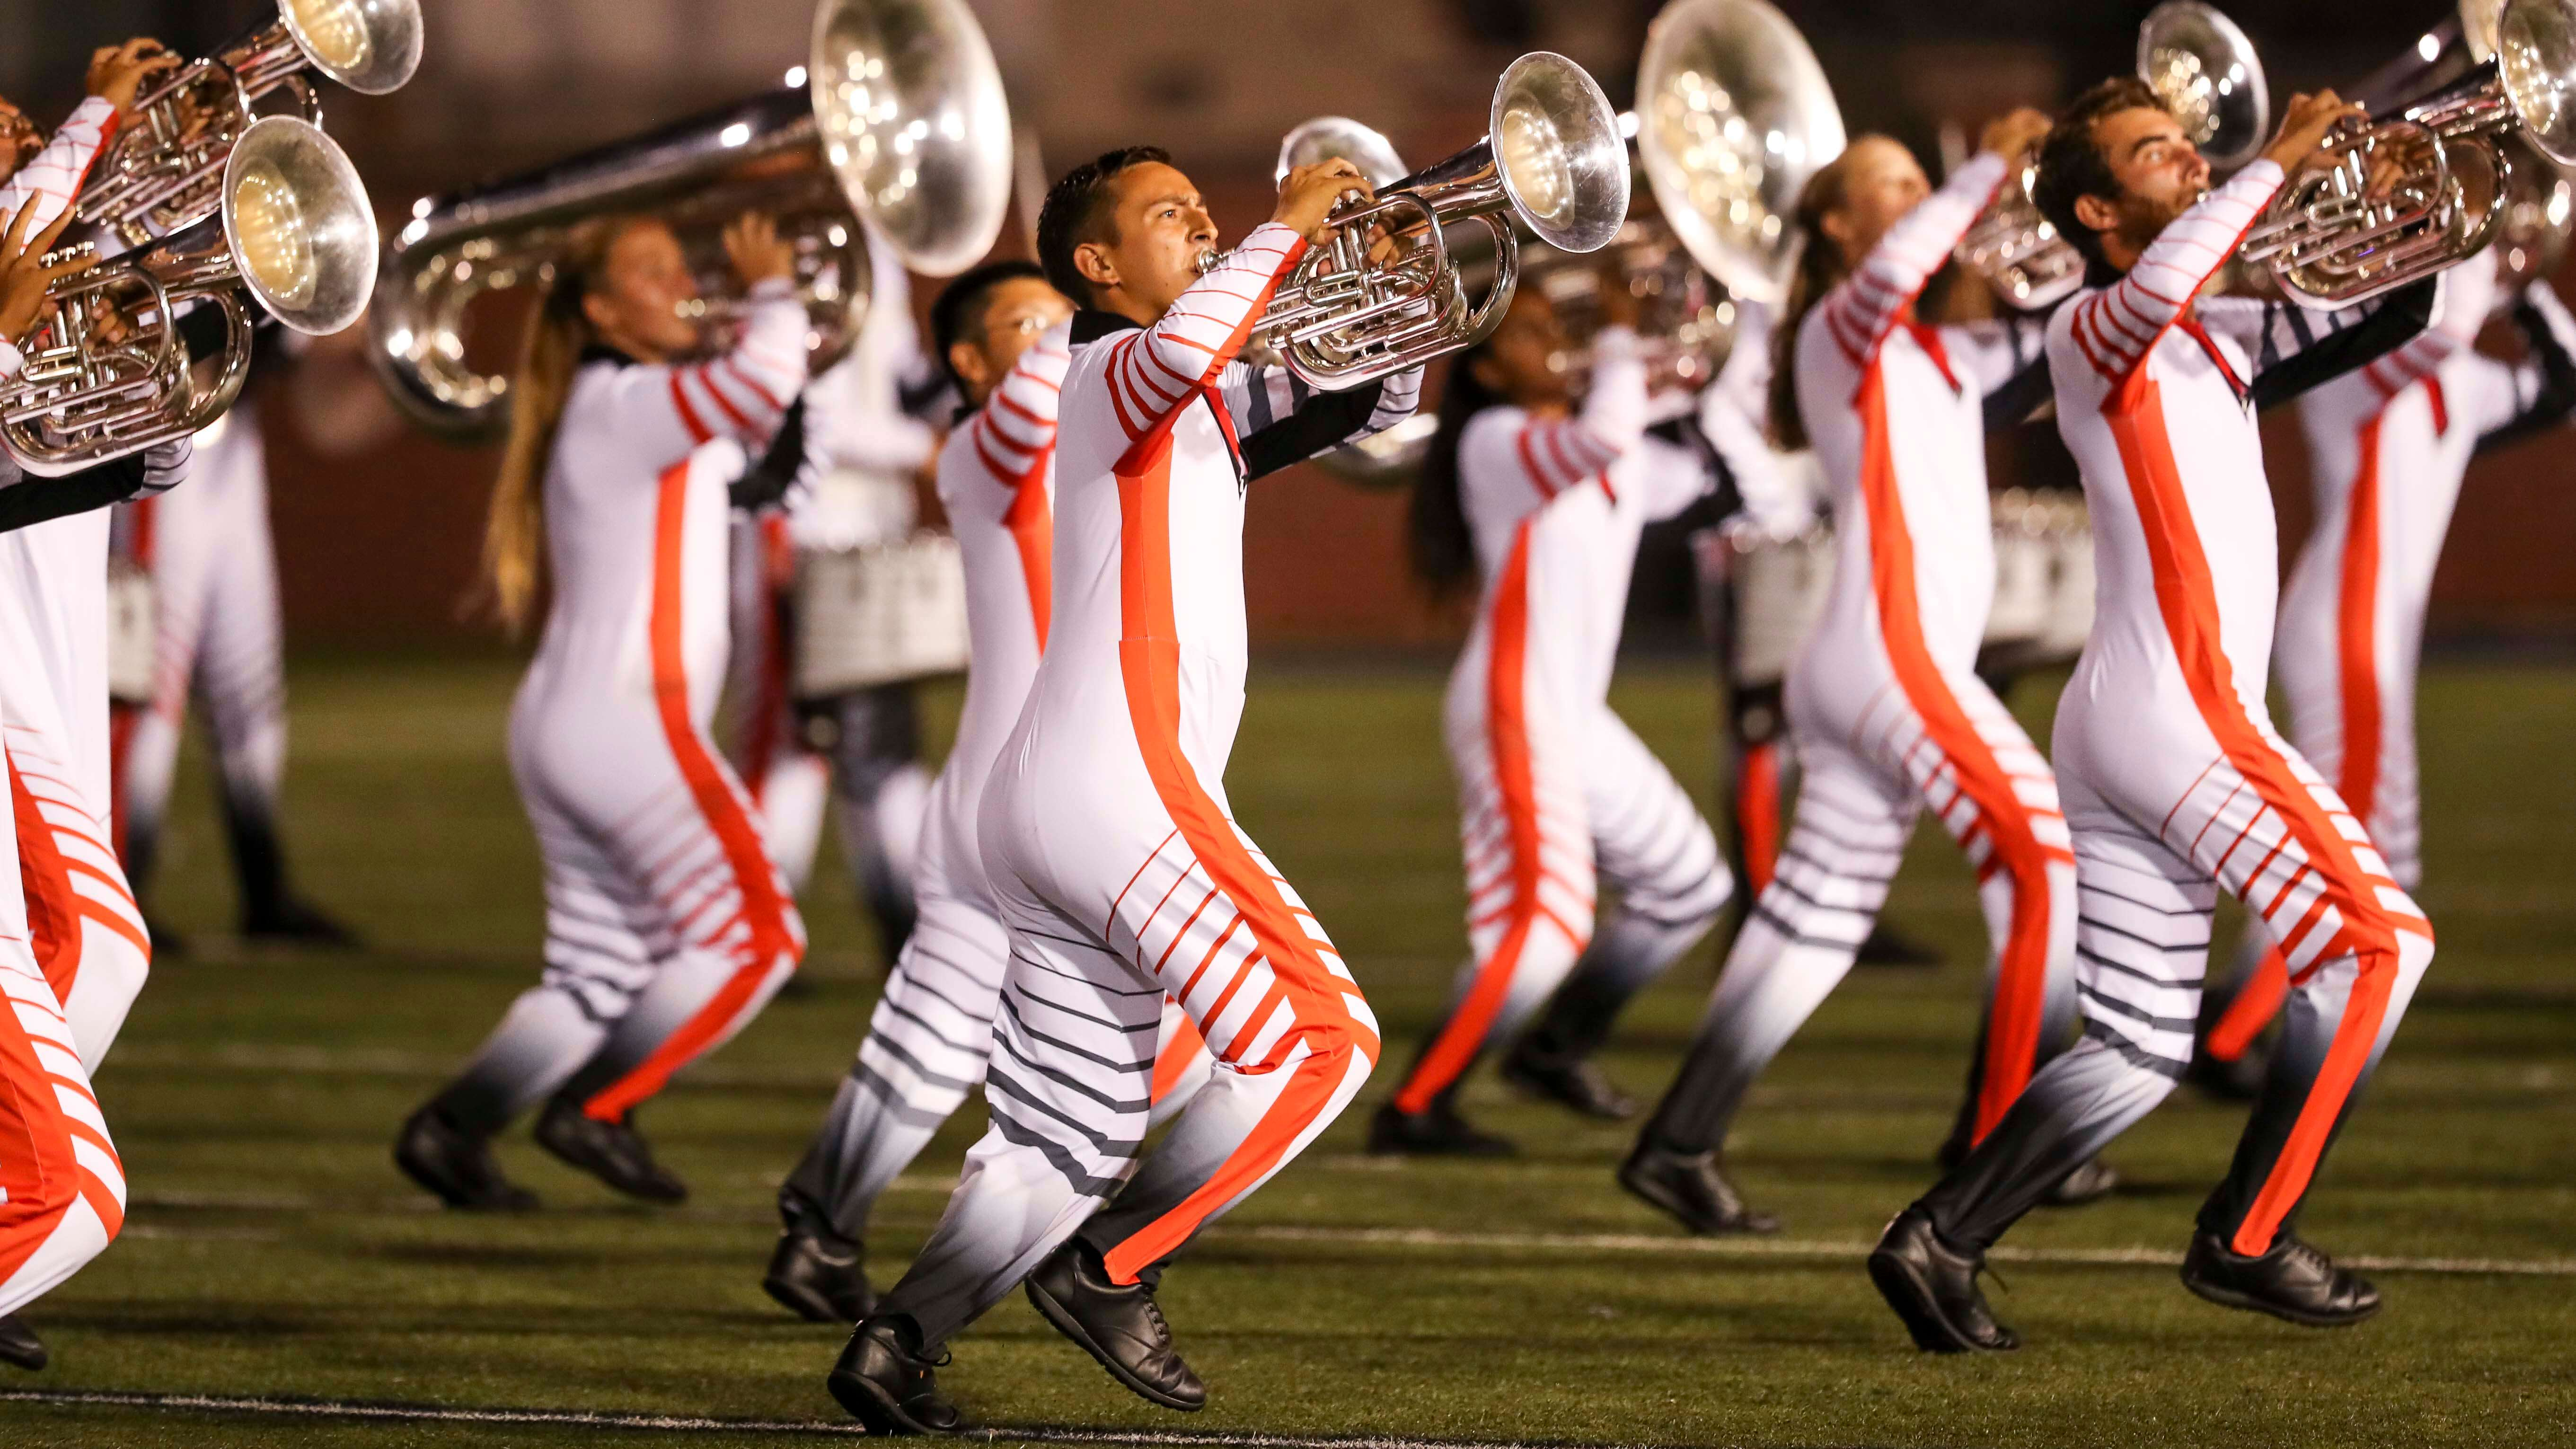 Less than a point separates top corps in ultra-competitive Open Class Prelims